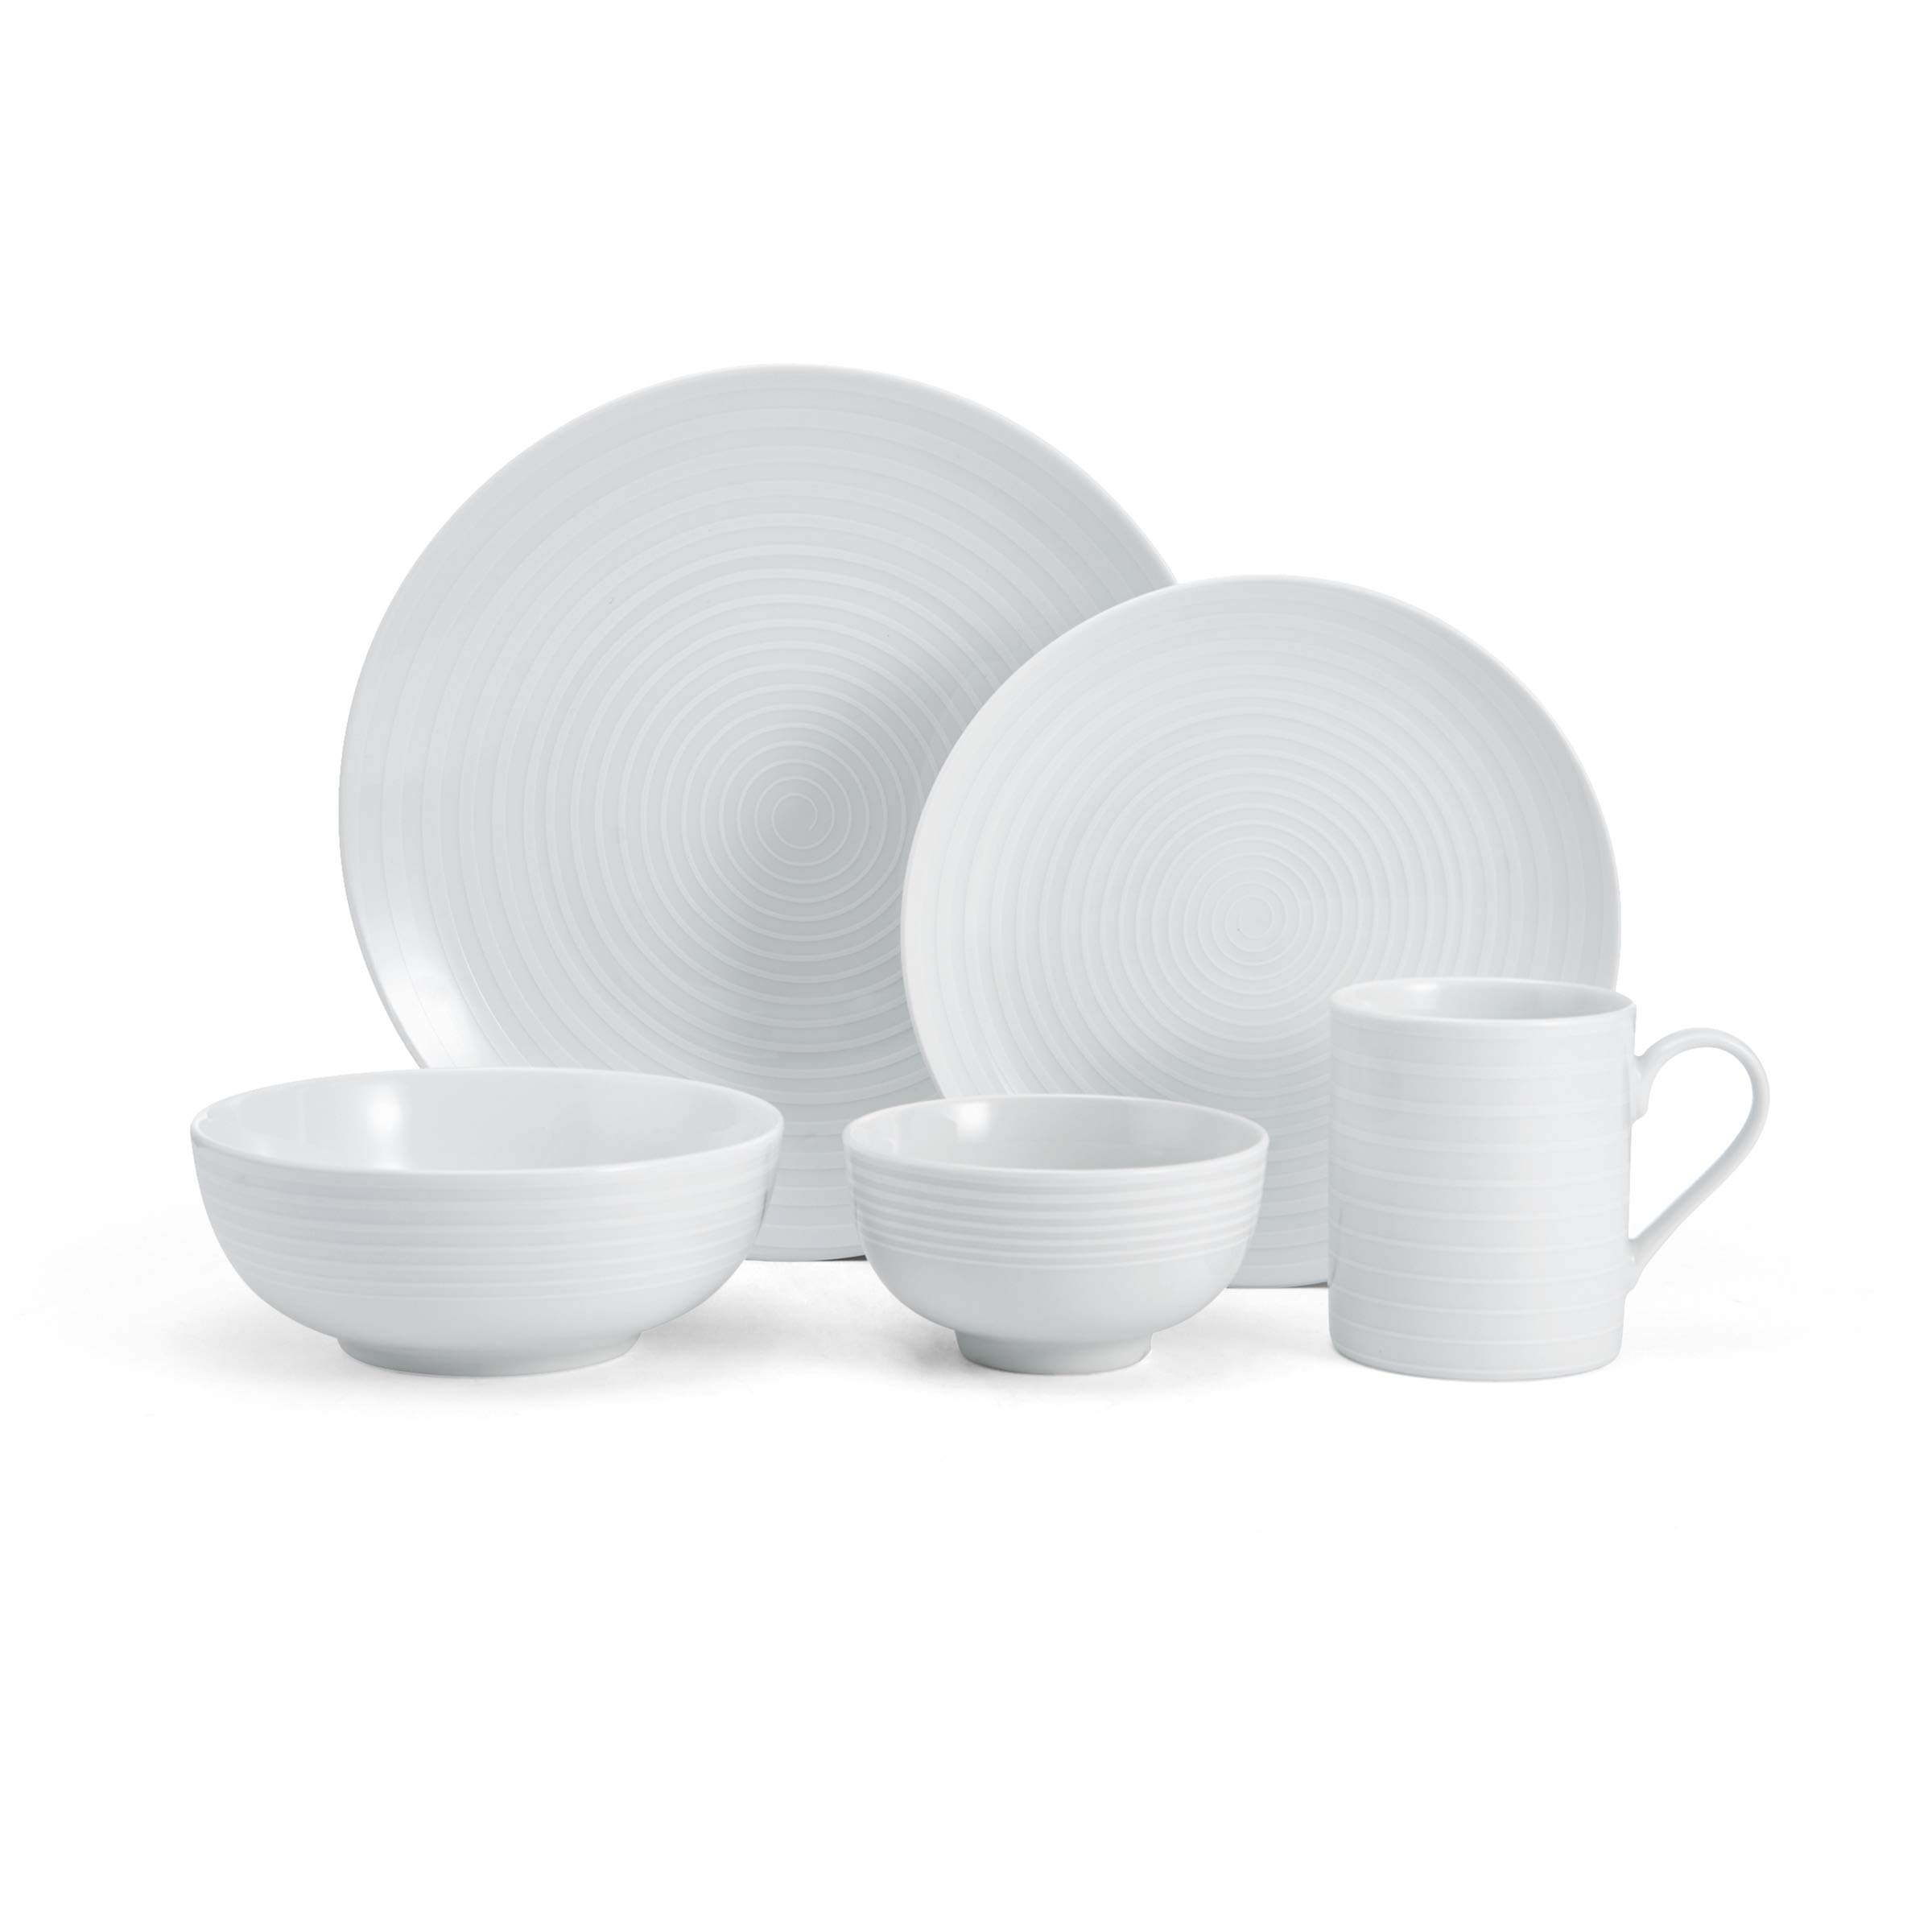 Mikasa 5224196 Cheers 40-Piece Dinnerware Set, Service for 8